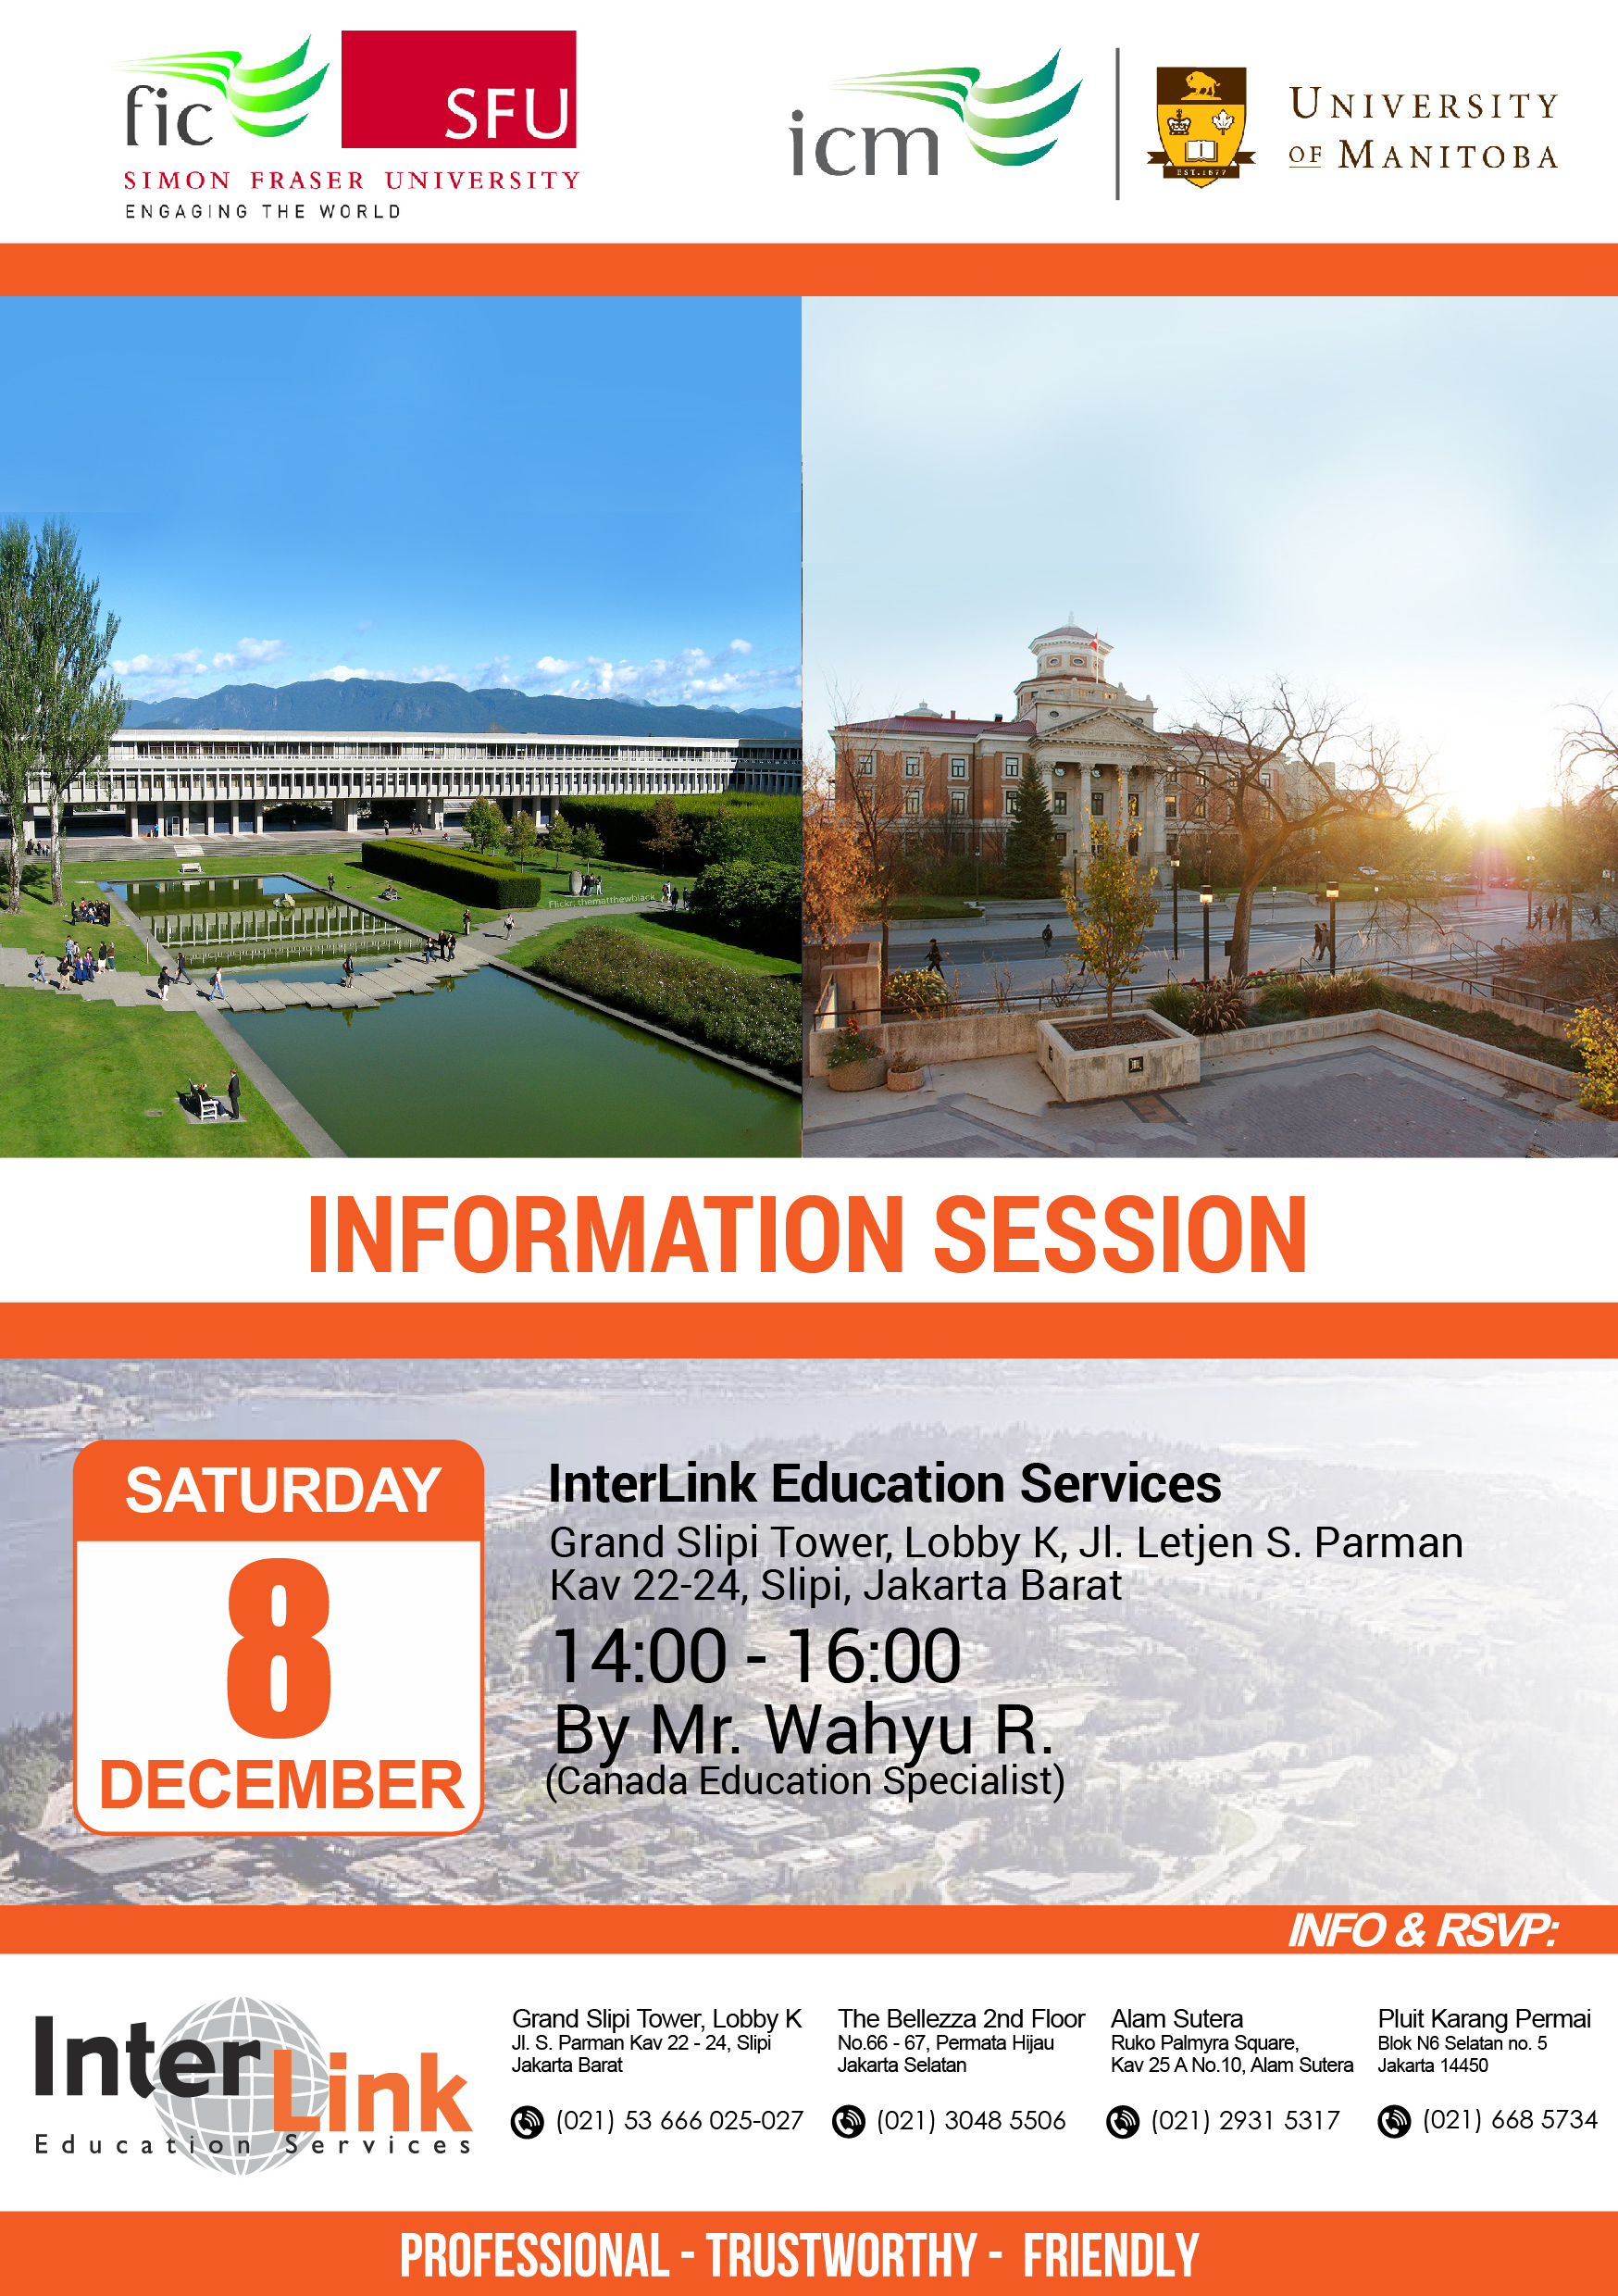 Study in Canada FIC and ICM-01